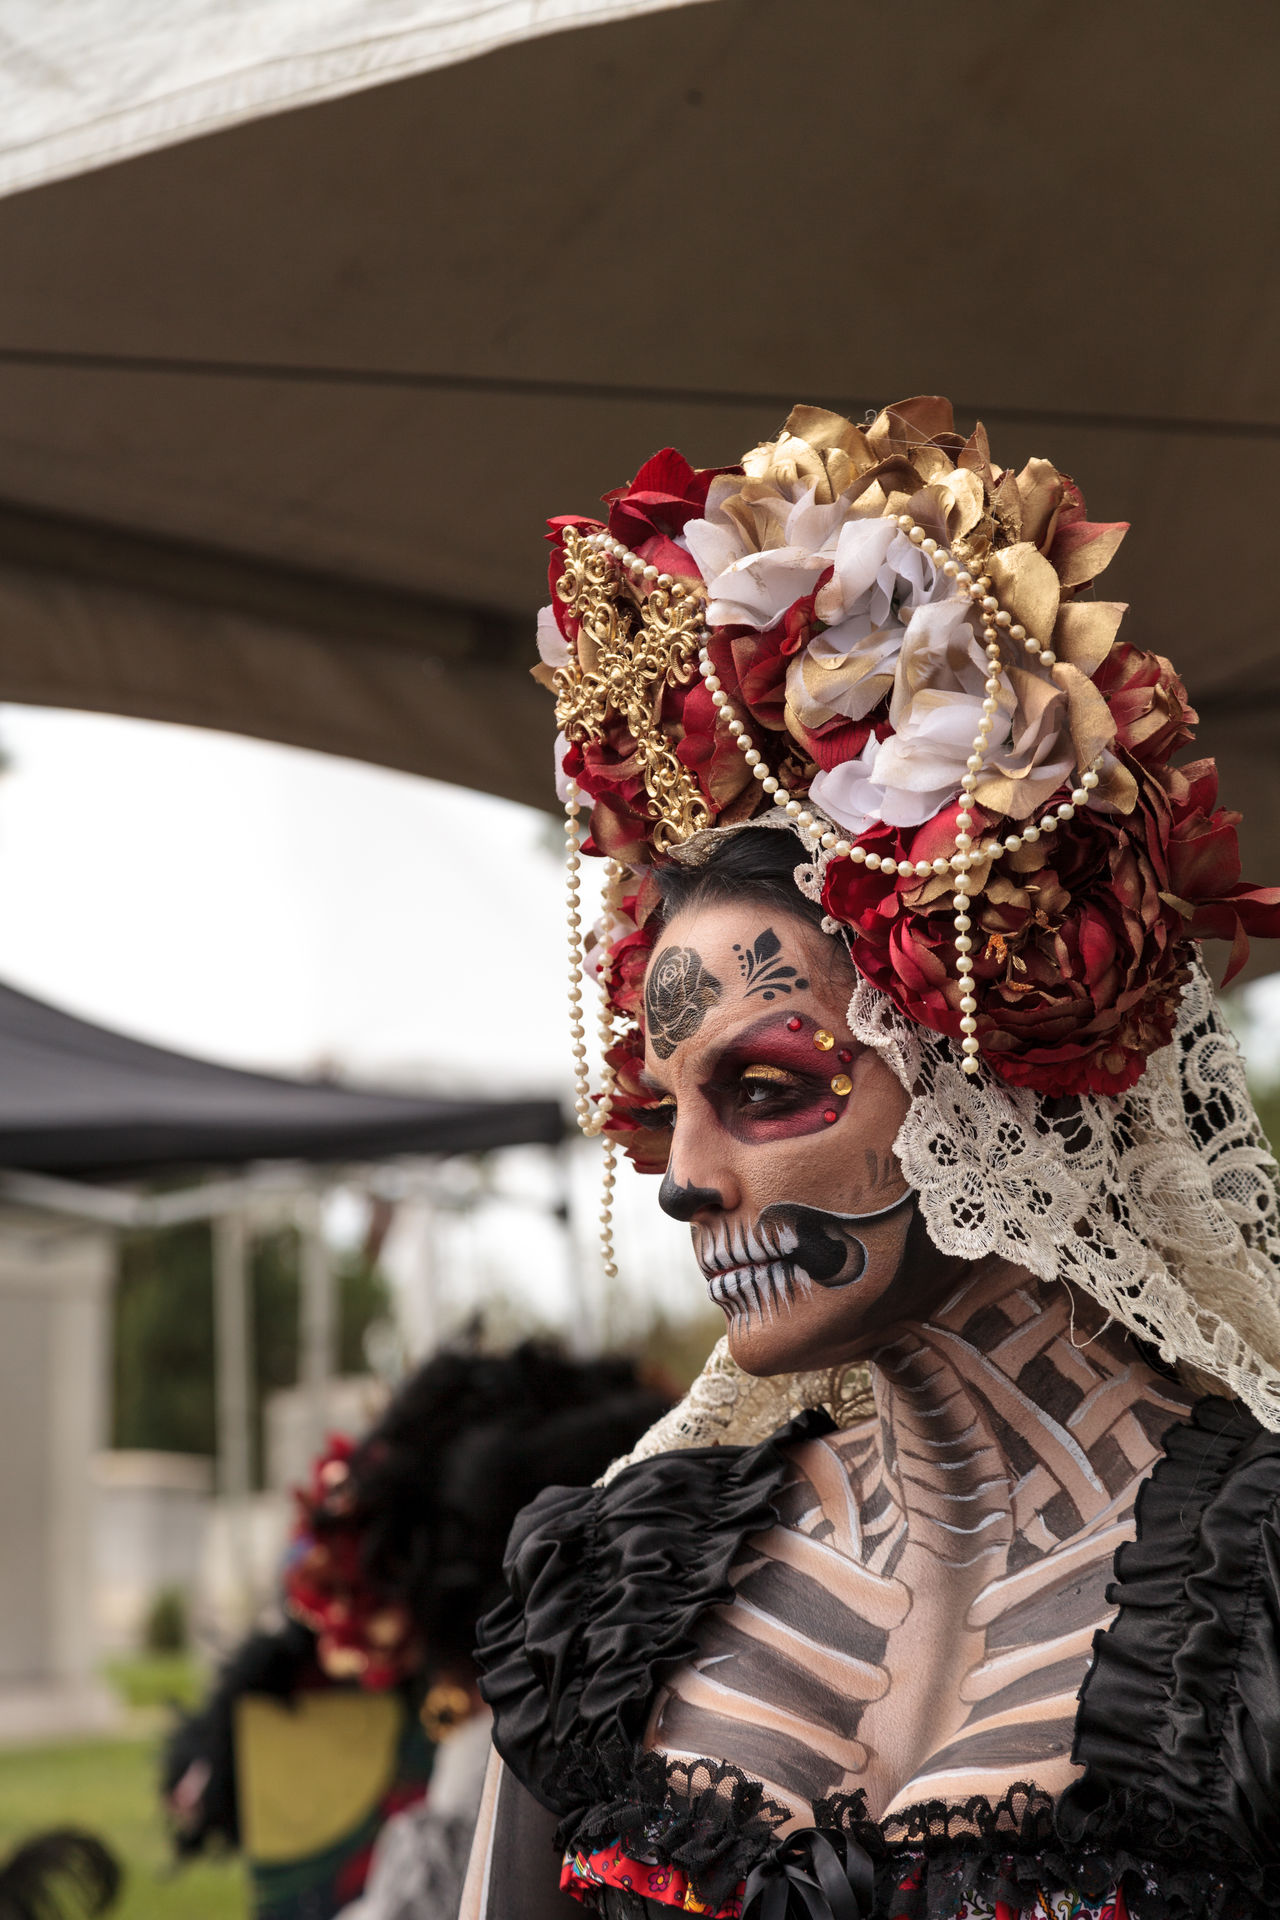 Los Angeles, CA, USA - October 29, 2016: Skeleton woman performer at Dia de los Muertos, Day of the dead, in Los Angeles at the Hollywood Forever Cemetery grounds. Editorial use only. Adult Adults Only All Saints Day Costume Day Day Of The Dead Dia De Los Muertos Face Paint Ghoul Ghoulish Gothic Headdress Outdoors People Skeleton Skull Steam Punk Woman